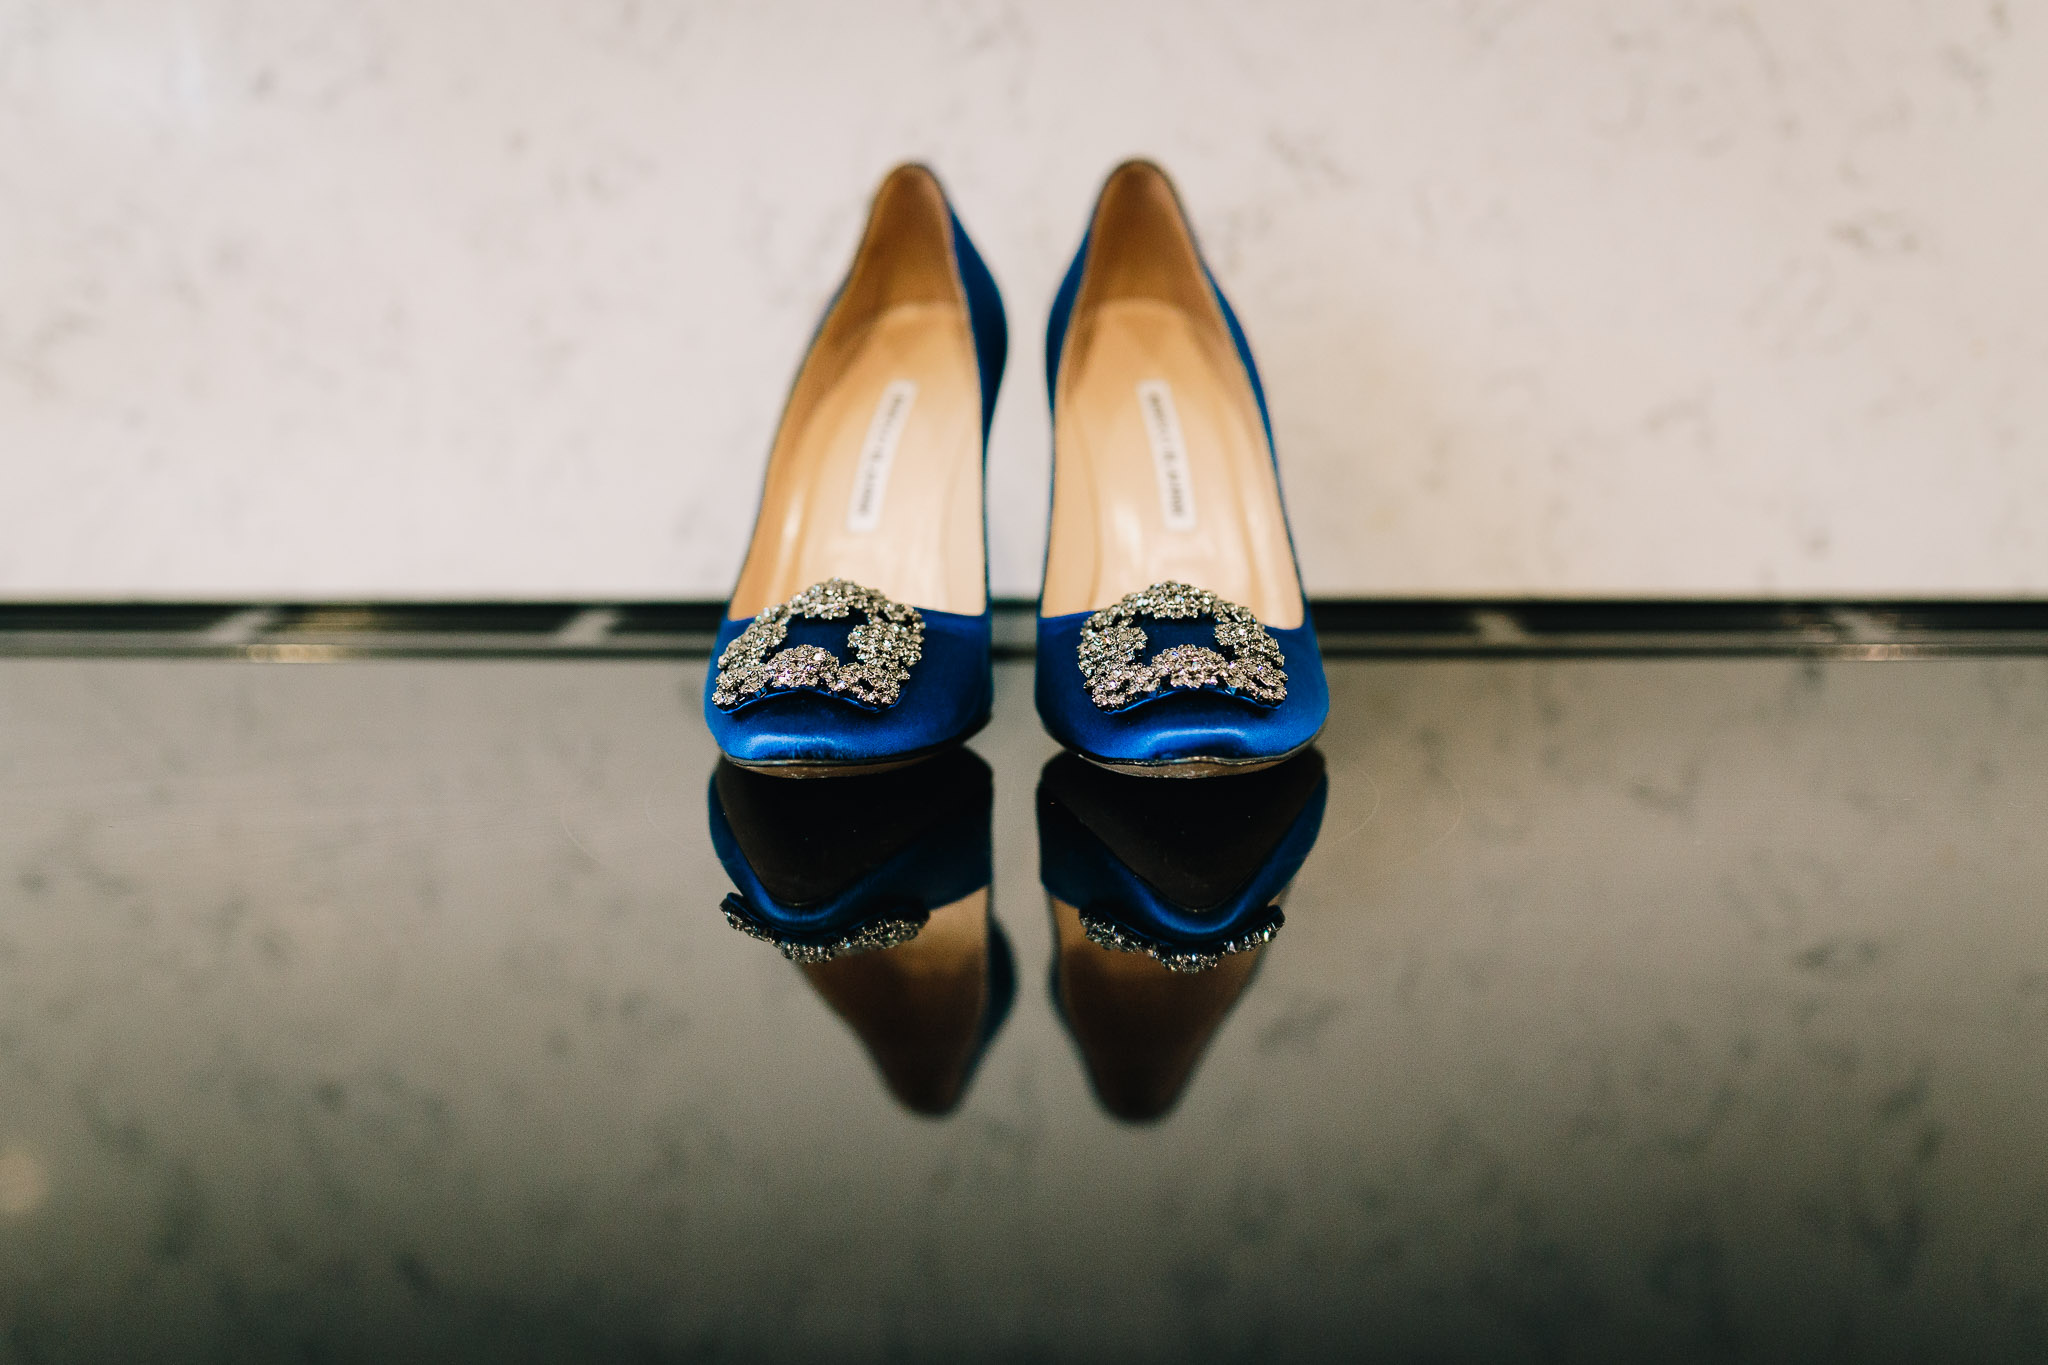 MANOLO BLAHNIK BLUE WEDDING SHOES REFLECTION